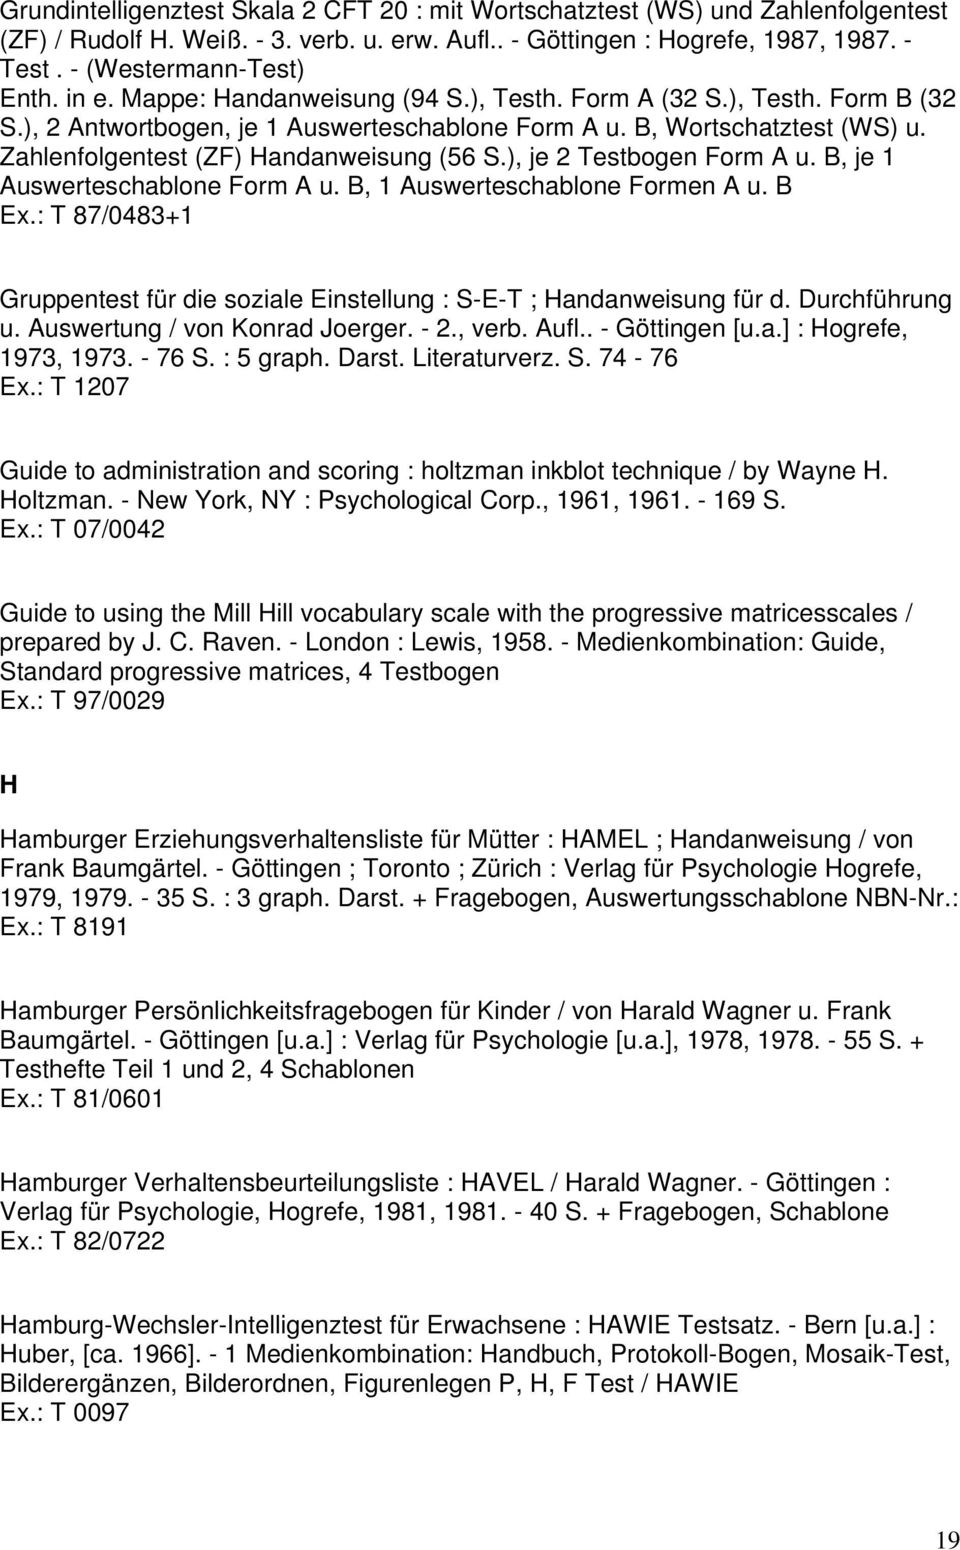 Charmant Fragebogen Vorlage Für Kinder Ideen - Entry Level Resume ...